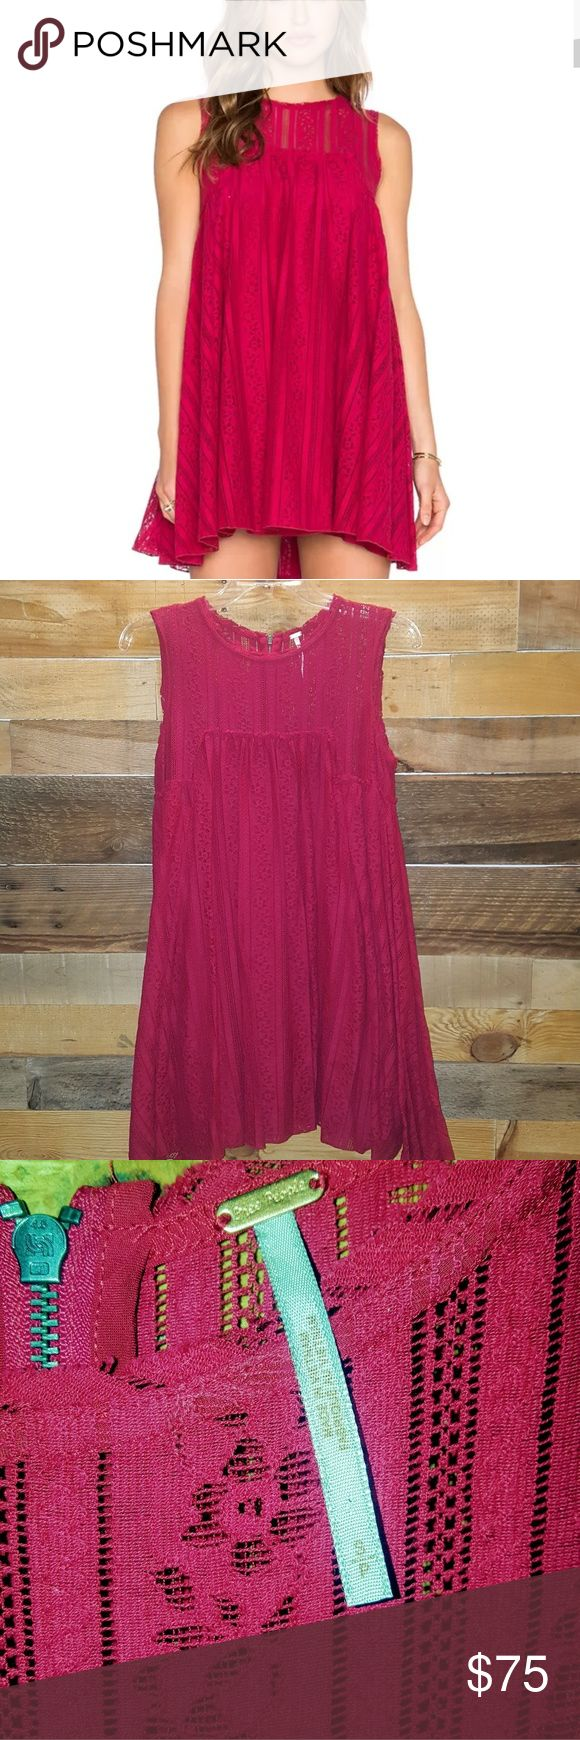 """💓LIKE NEW FREE PEOPLE TU-ES-LA MINI DRESS FREE PEOPLE TU-ES-LA MINI DRESS LIKE NEW WORN ONCE AROUND HOUSE SIZE SMALL SHELL 73% COTTON/27% NYLON, LINING 100% RAYON 32"""" FROM SHOULDER SEAM TO HEM COLOR RUBY RED EMBROIDERED LACE DETAIL DESIGN BOHEMIAN CHIC MINI DRESS FEMININE VOLUME WITH PLEATS & FLARED HEM EXPOSED BACK ZIPPER, SLEEVELESS FULLY LINED 💓BEAUTIFUL DRESS FOR ANY OCASSION💓 *PLEASE KNOW YOUR SIZE,NO RETURNS NO TRADES NO HOLDS* Free People Dresses Mini"""